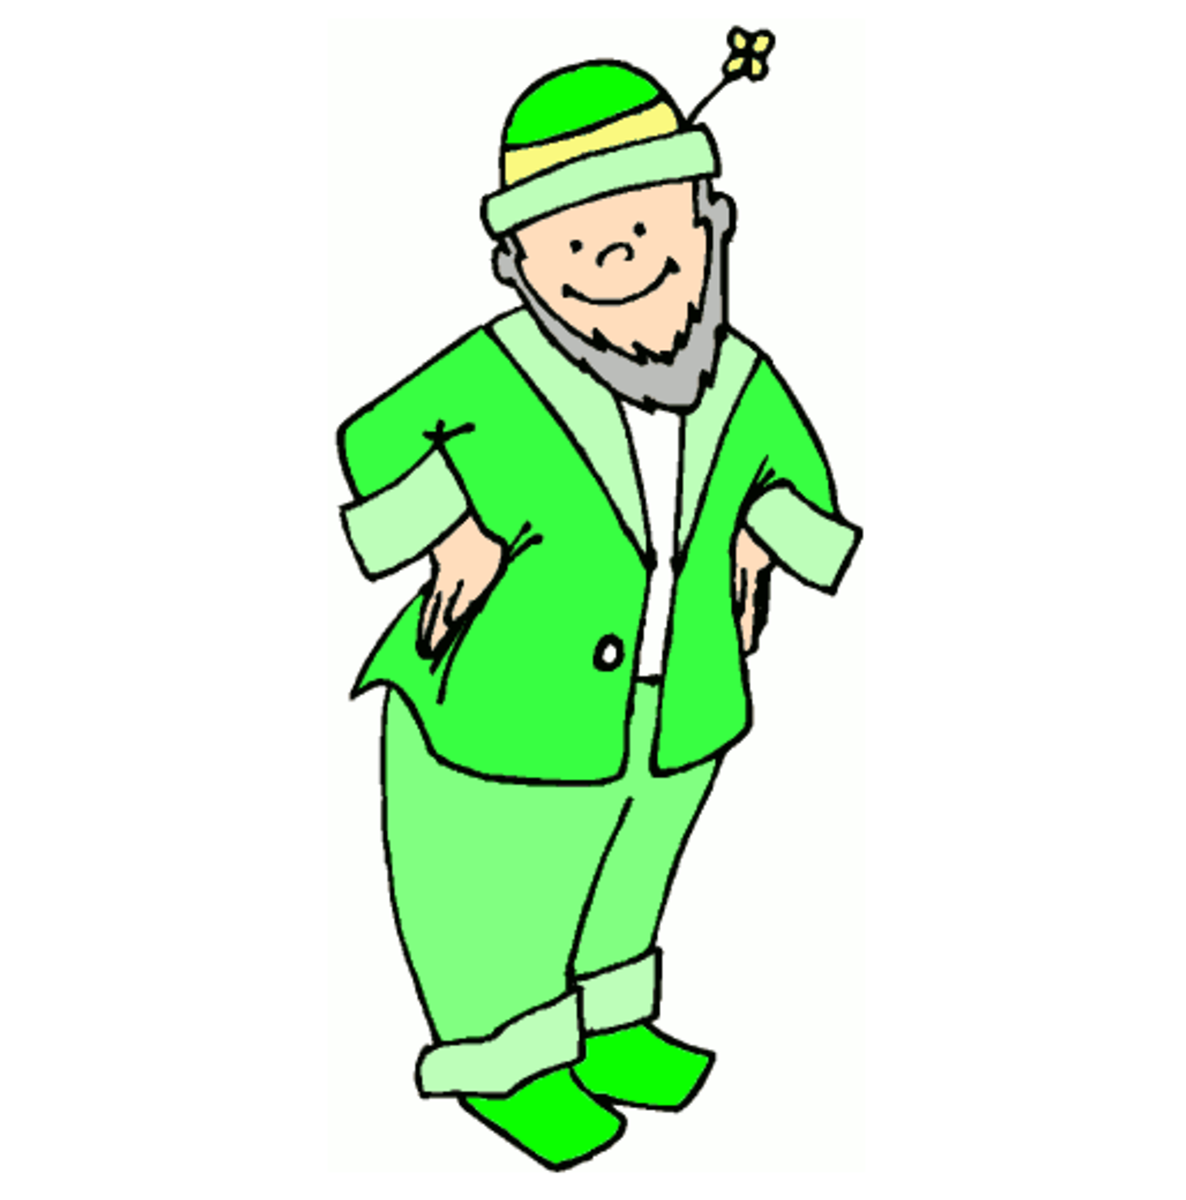 Leprechaun with Grey Beard and Green Suit